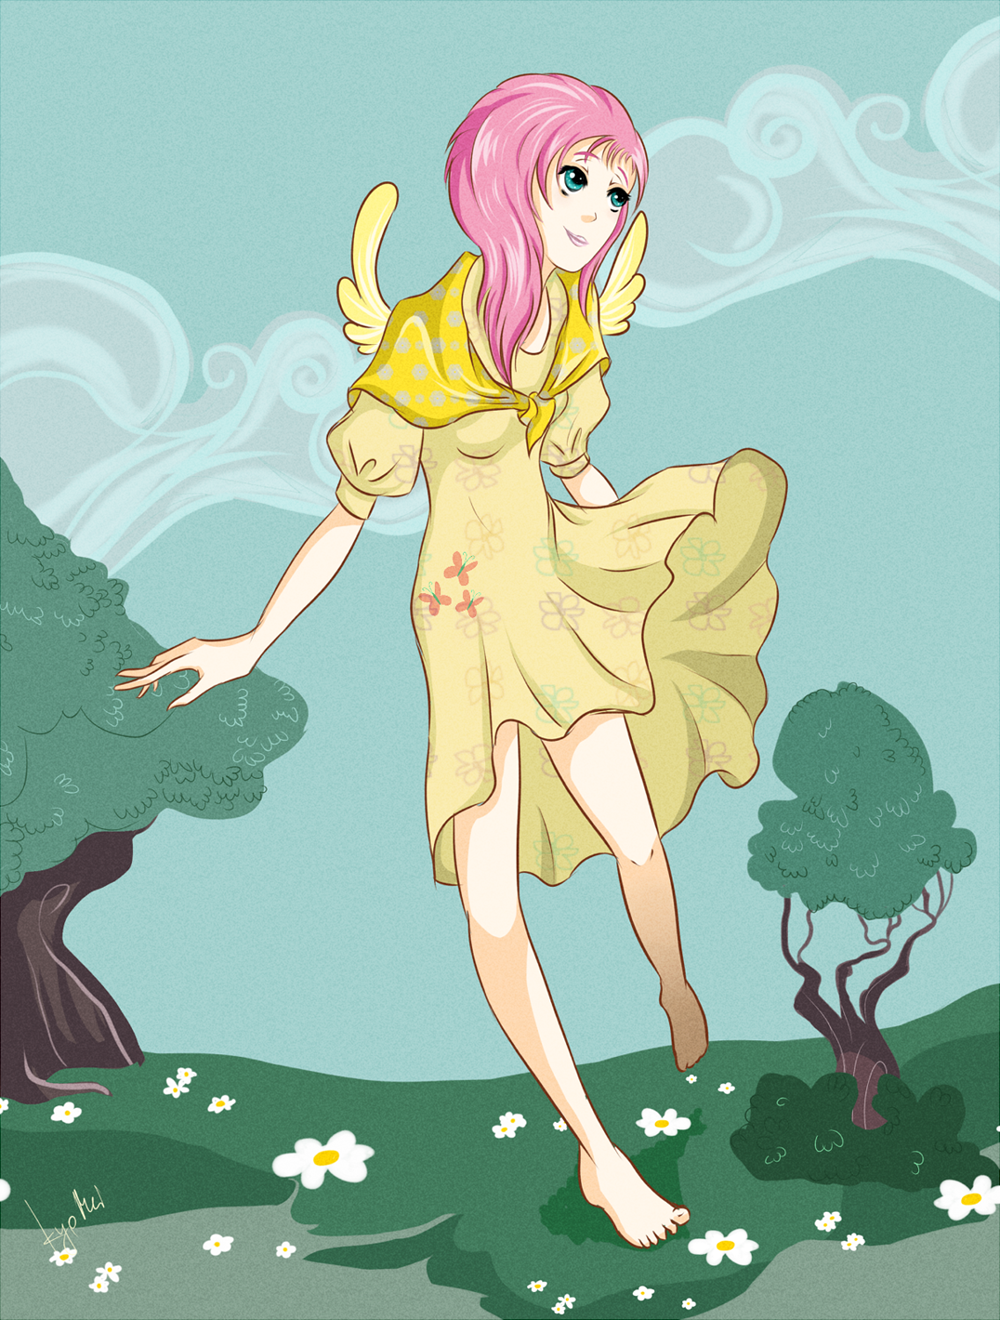 http://youloveit.ru/uploads/gallery/main/185/youloveit_ru_ninya_fluttershy.png